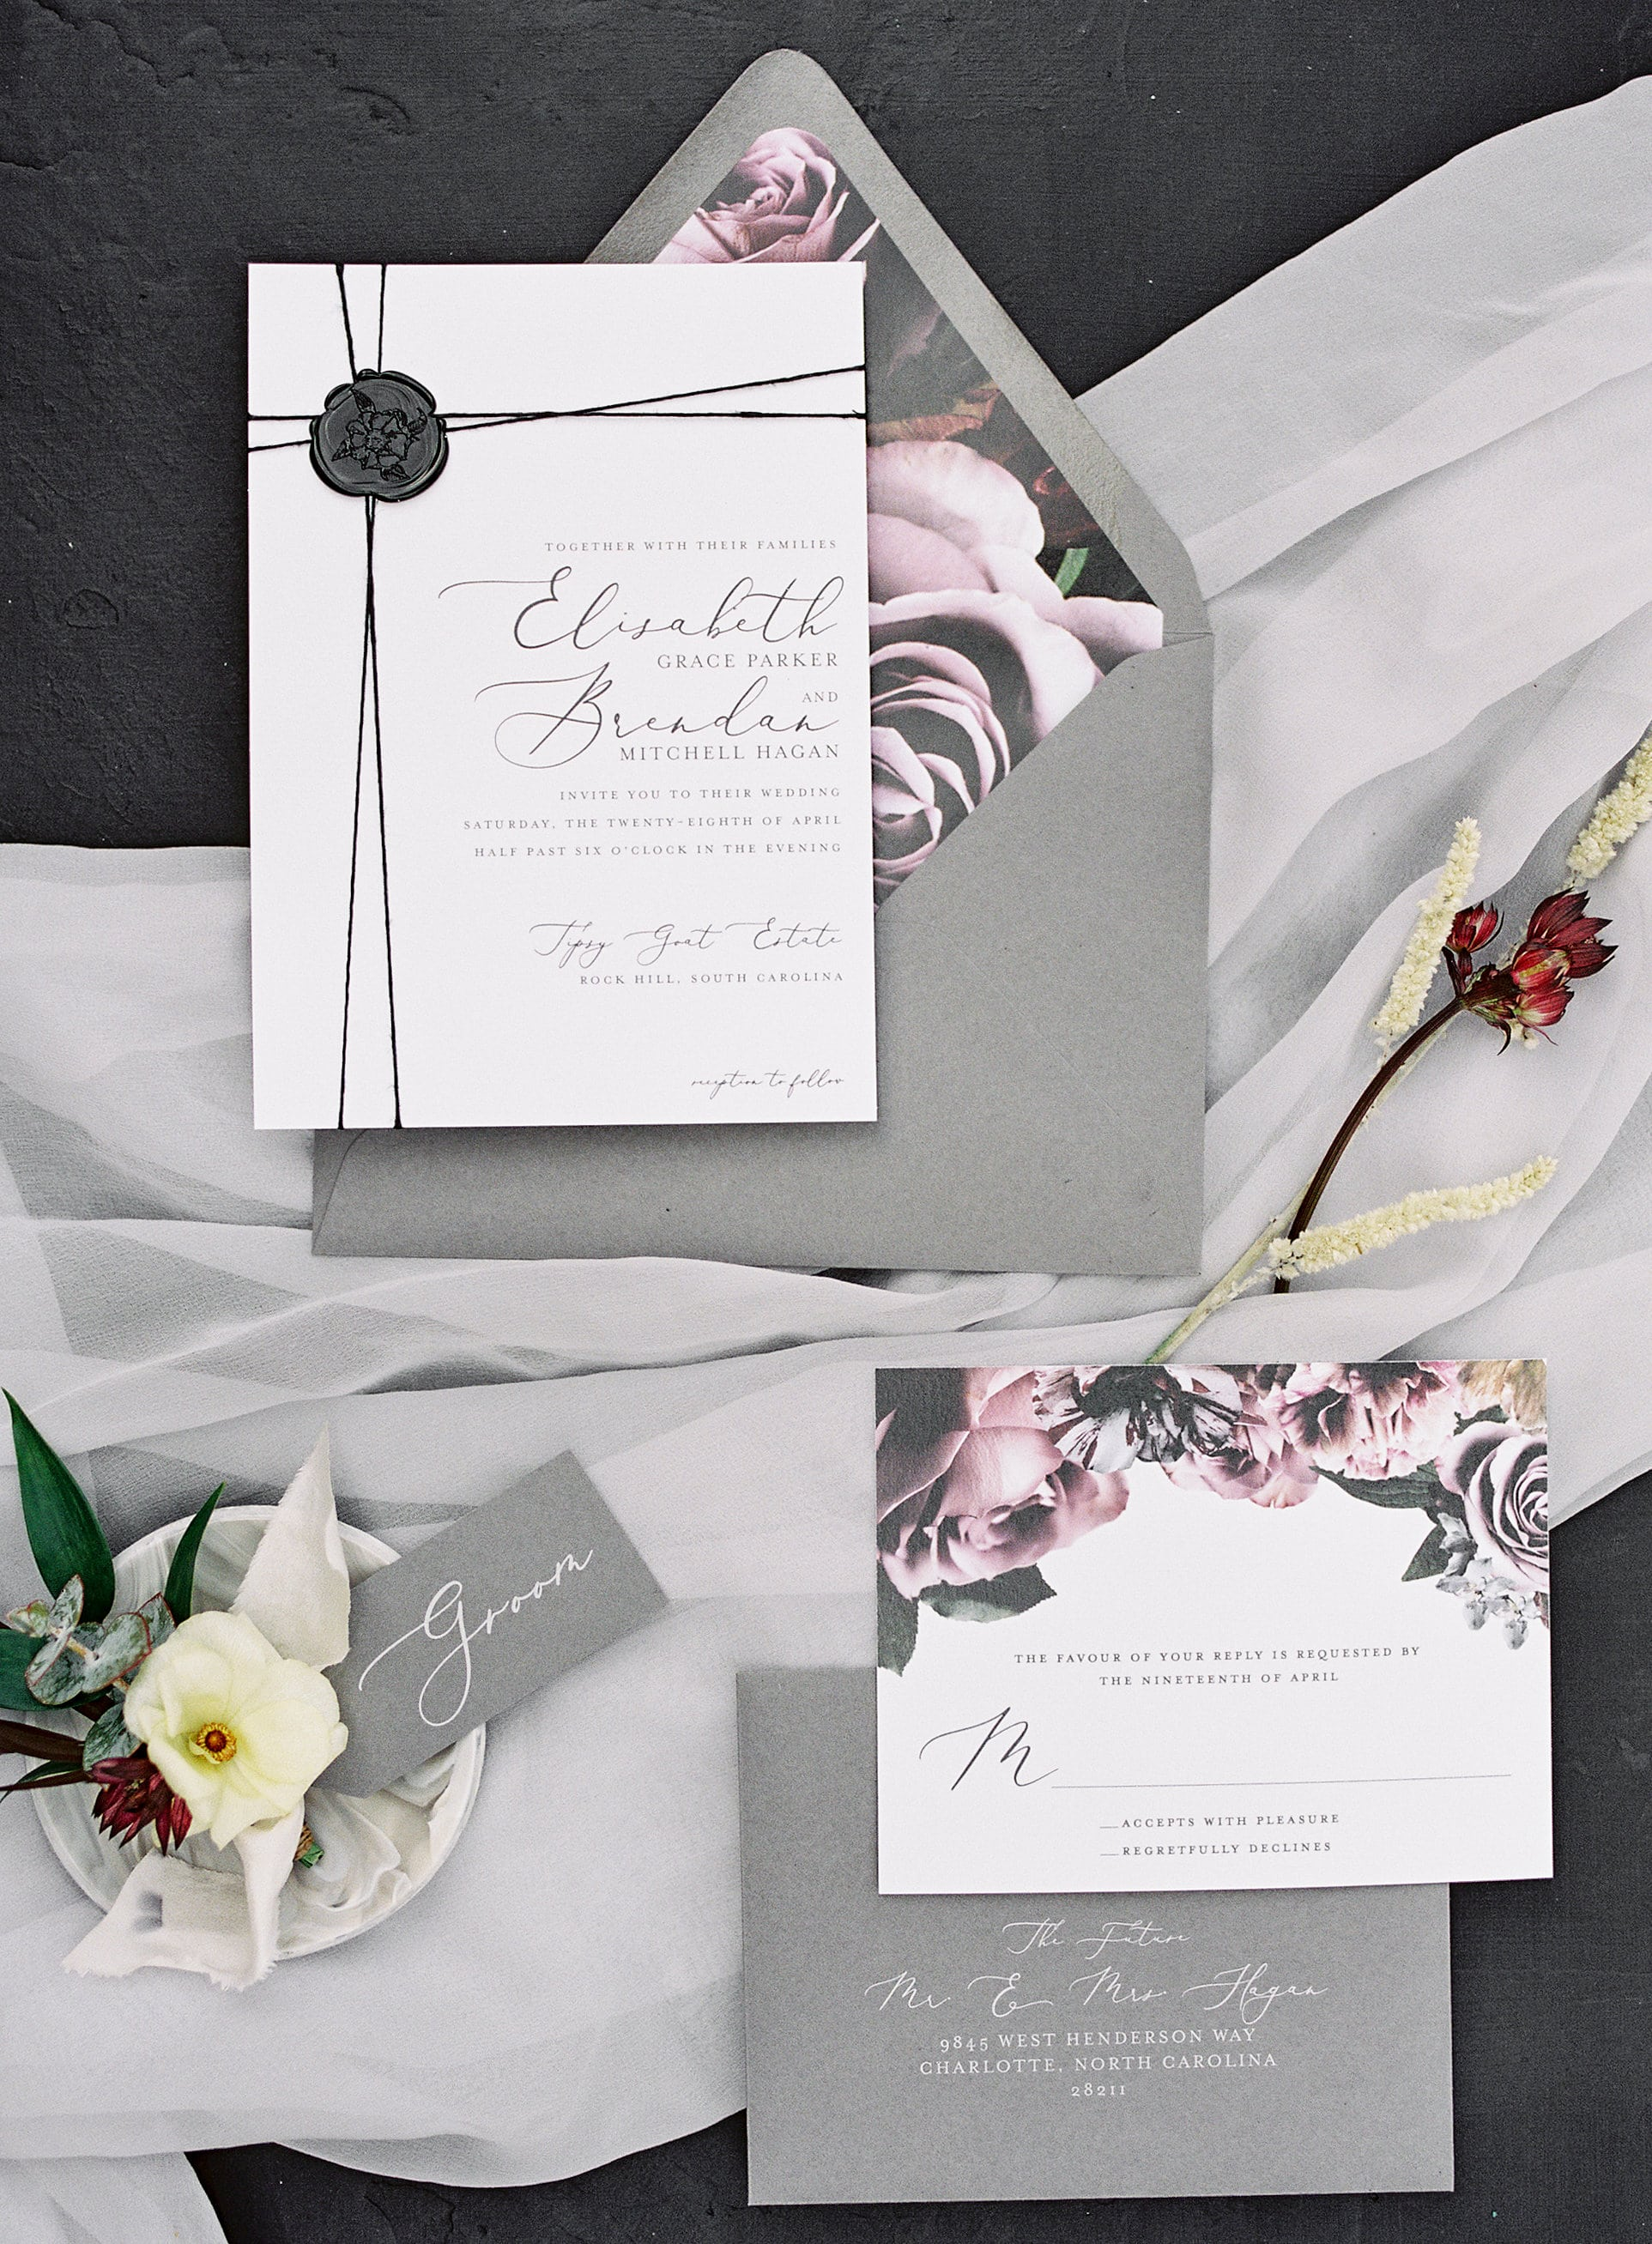 Gray invitation suite features black wax seat and floral envelope lining by Viri Lovley Designs